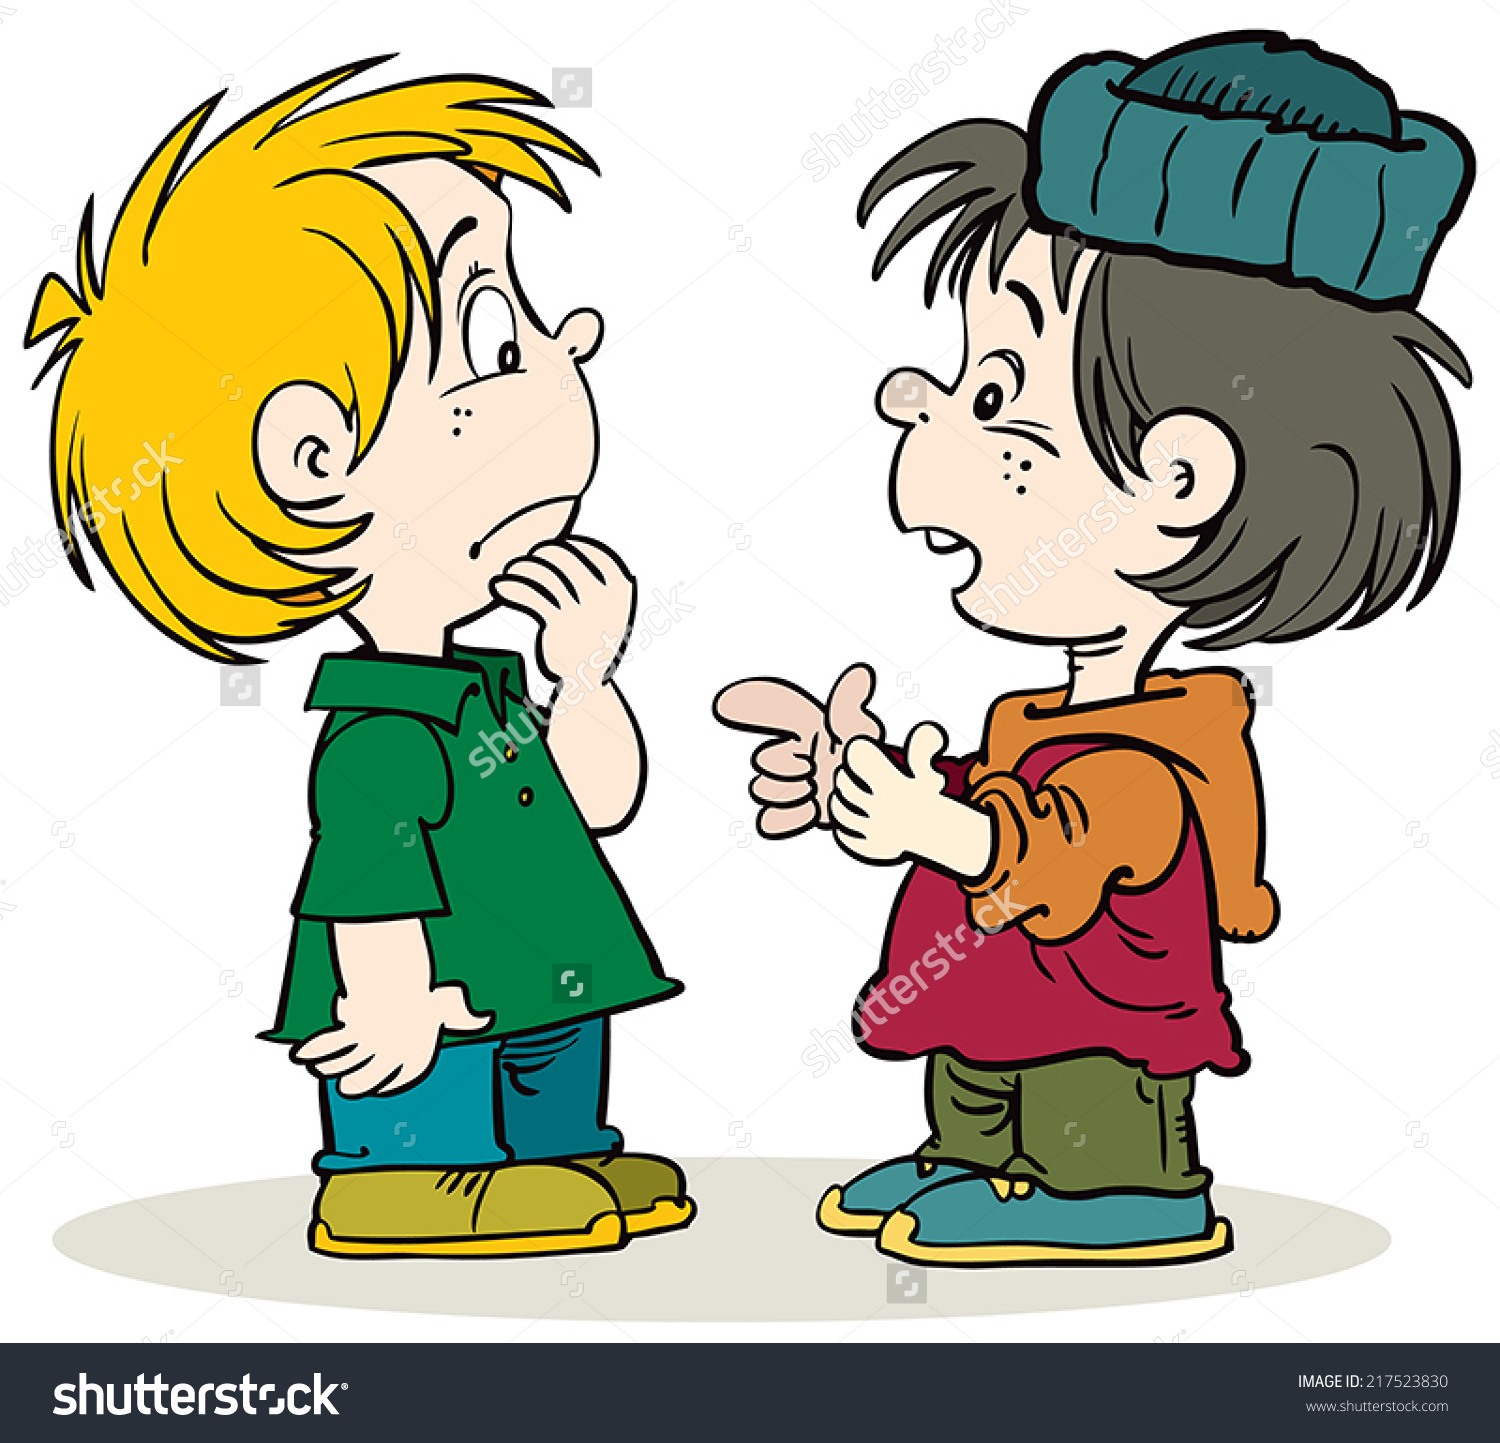 kids chatting clipart - Clipground